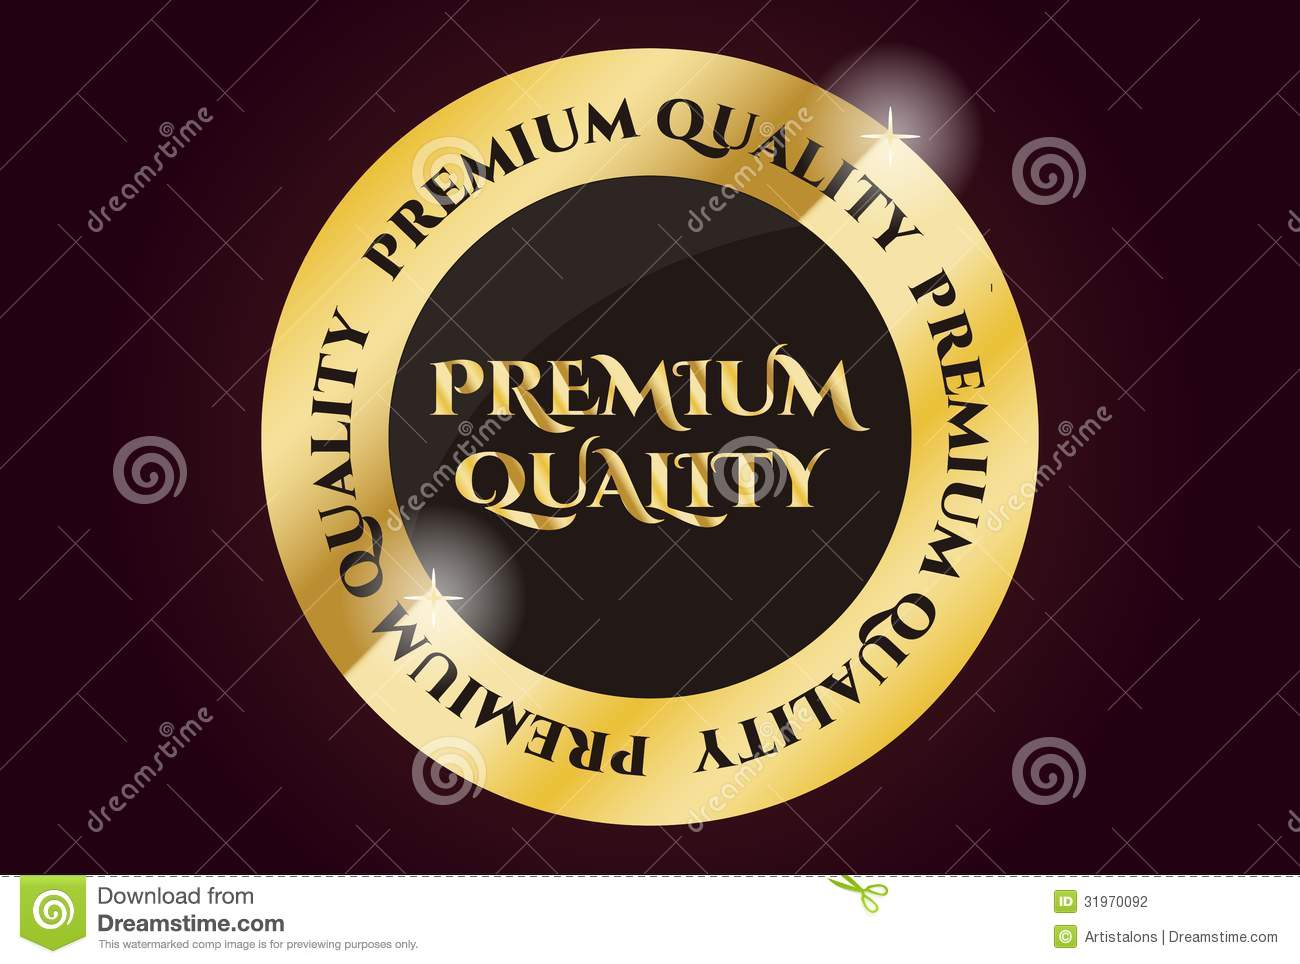 Premium Stock Photos Premium Quality Golden Seal